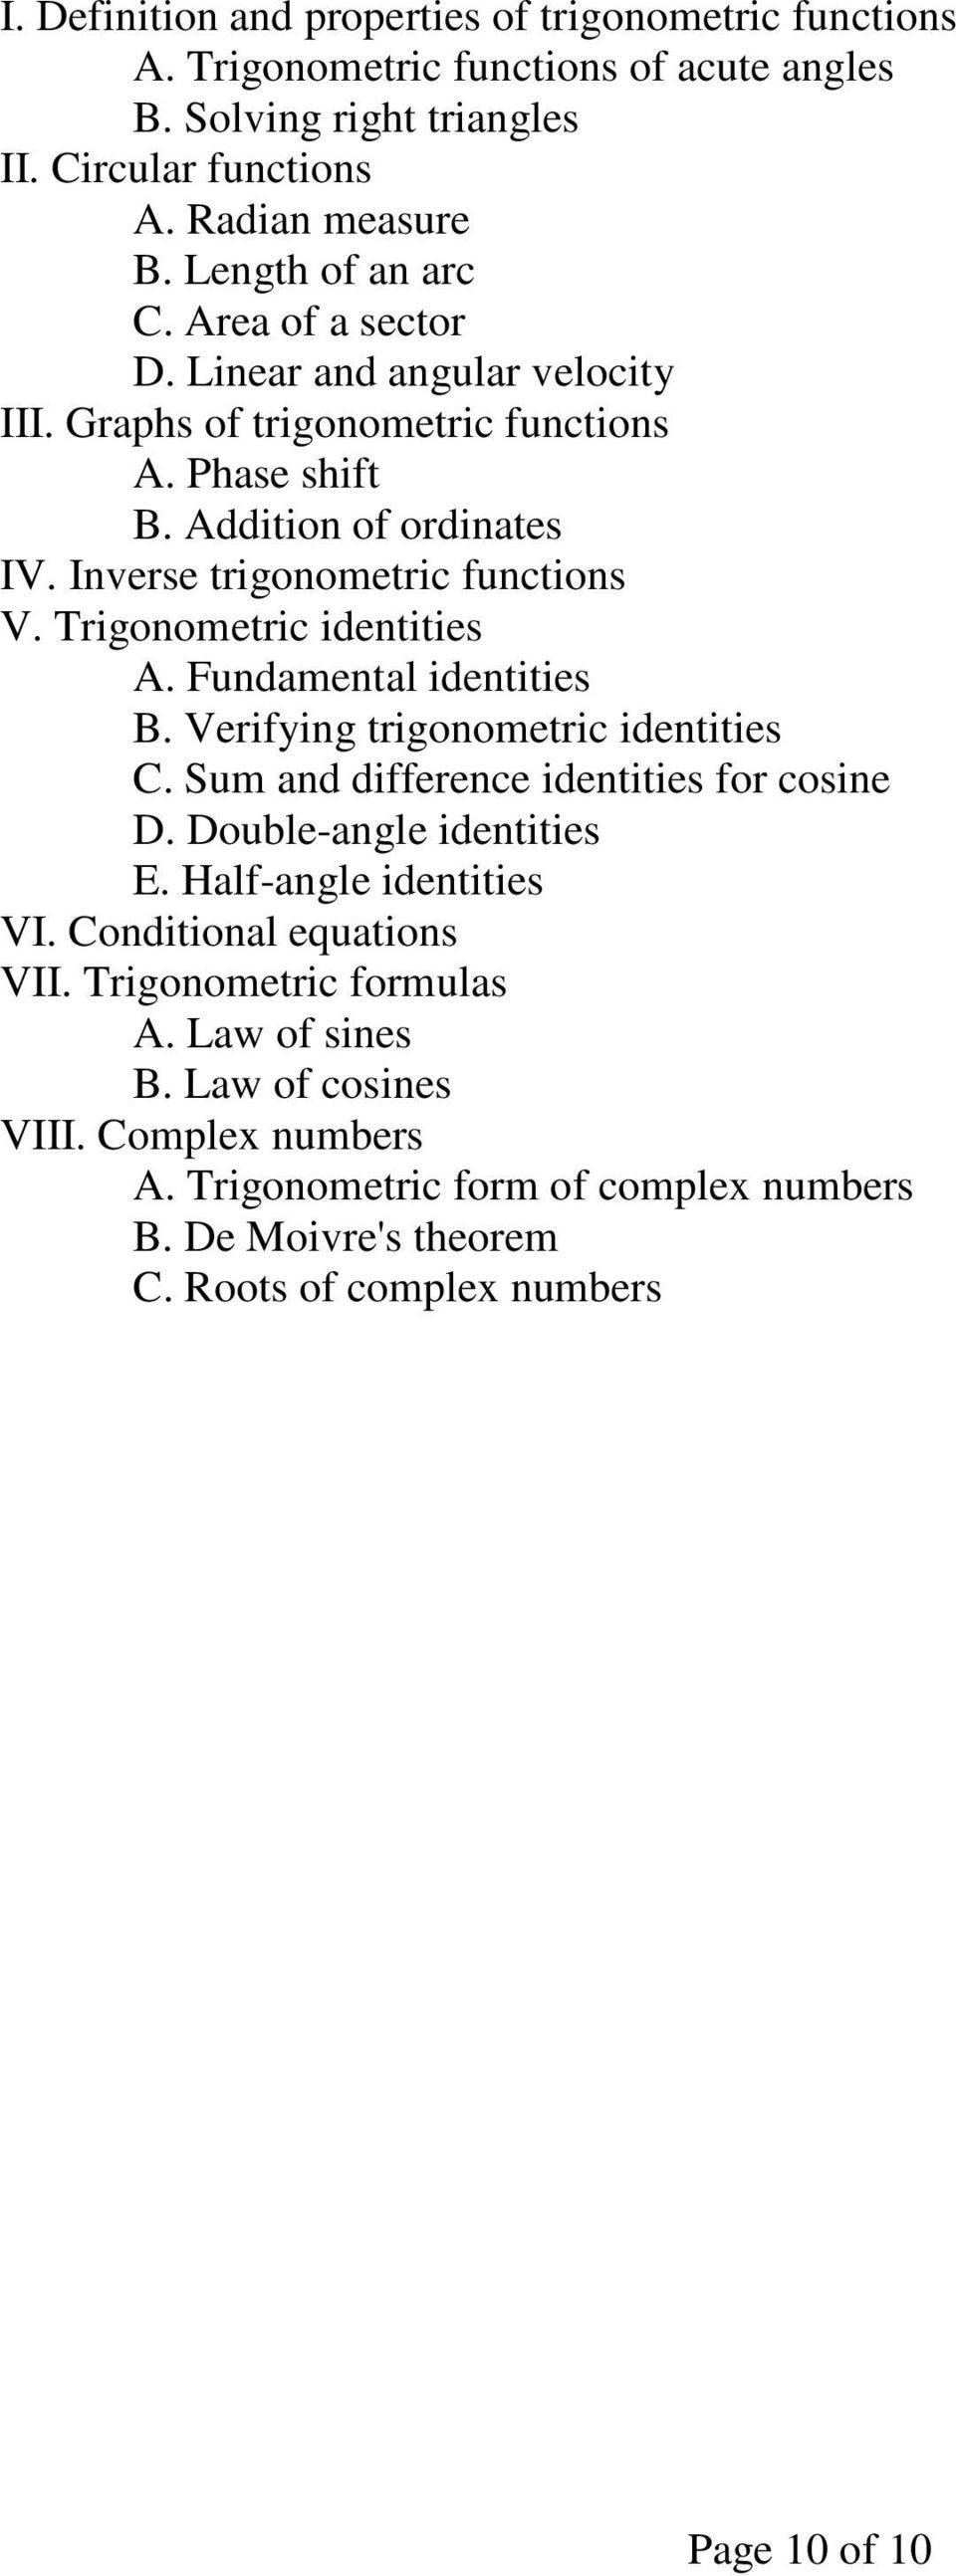 Trigonometric identities A. Fundamental identities B. Verifying trigonometric identities C. Sum and difference identities for cosine D. Double-angle identities E. Half-angle identities VI.